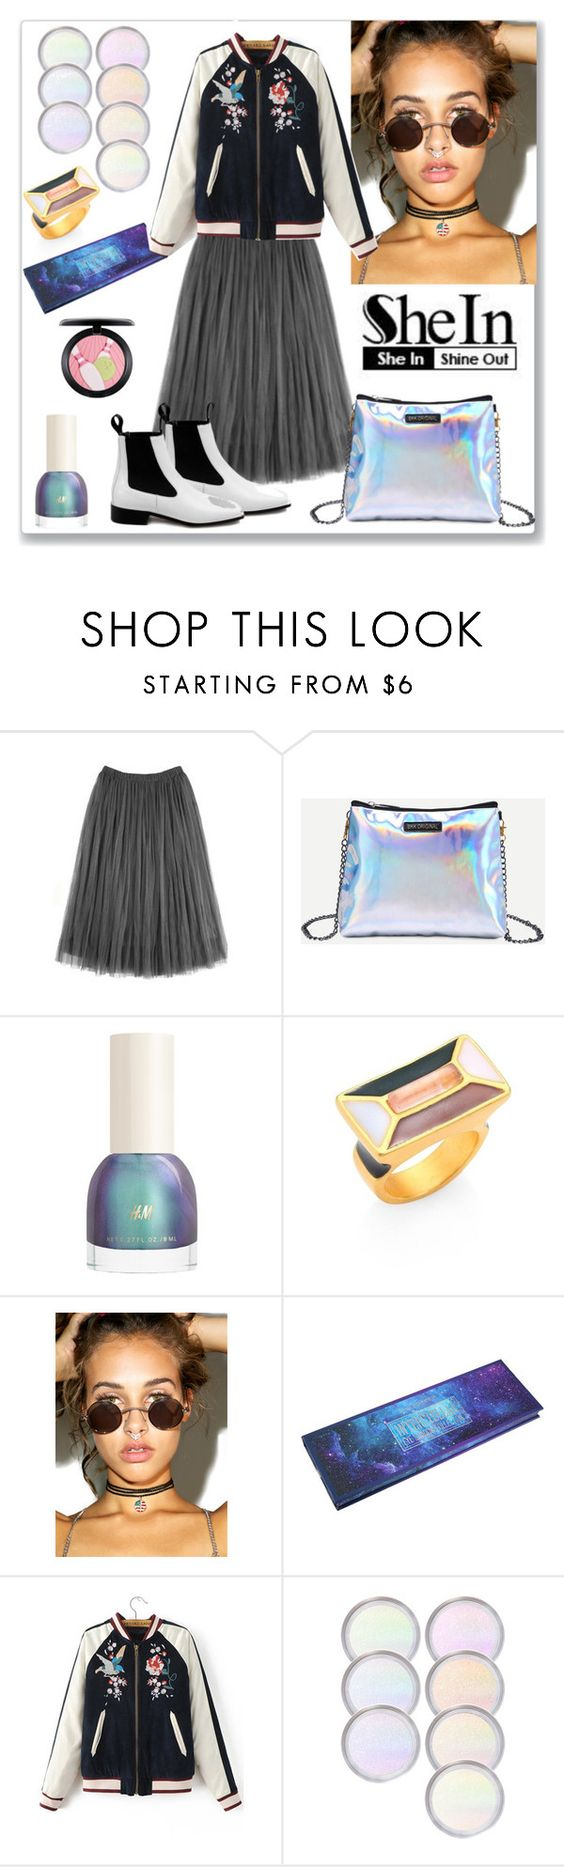 """""""Shein Bag"""" by ludmyla-stoyan ❤ liked on Polyvore featuring Paula Mendoza and Frasier Sterling"""